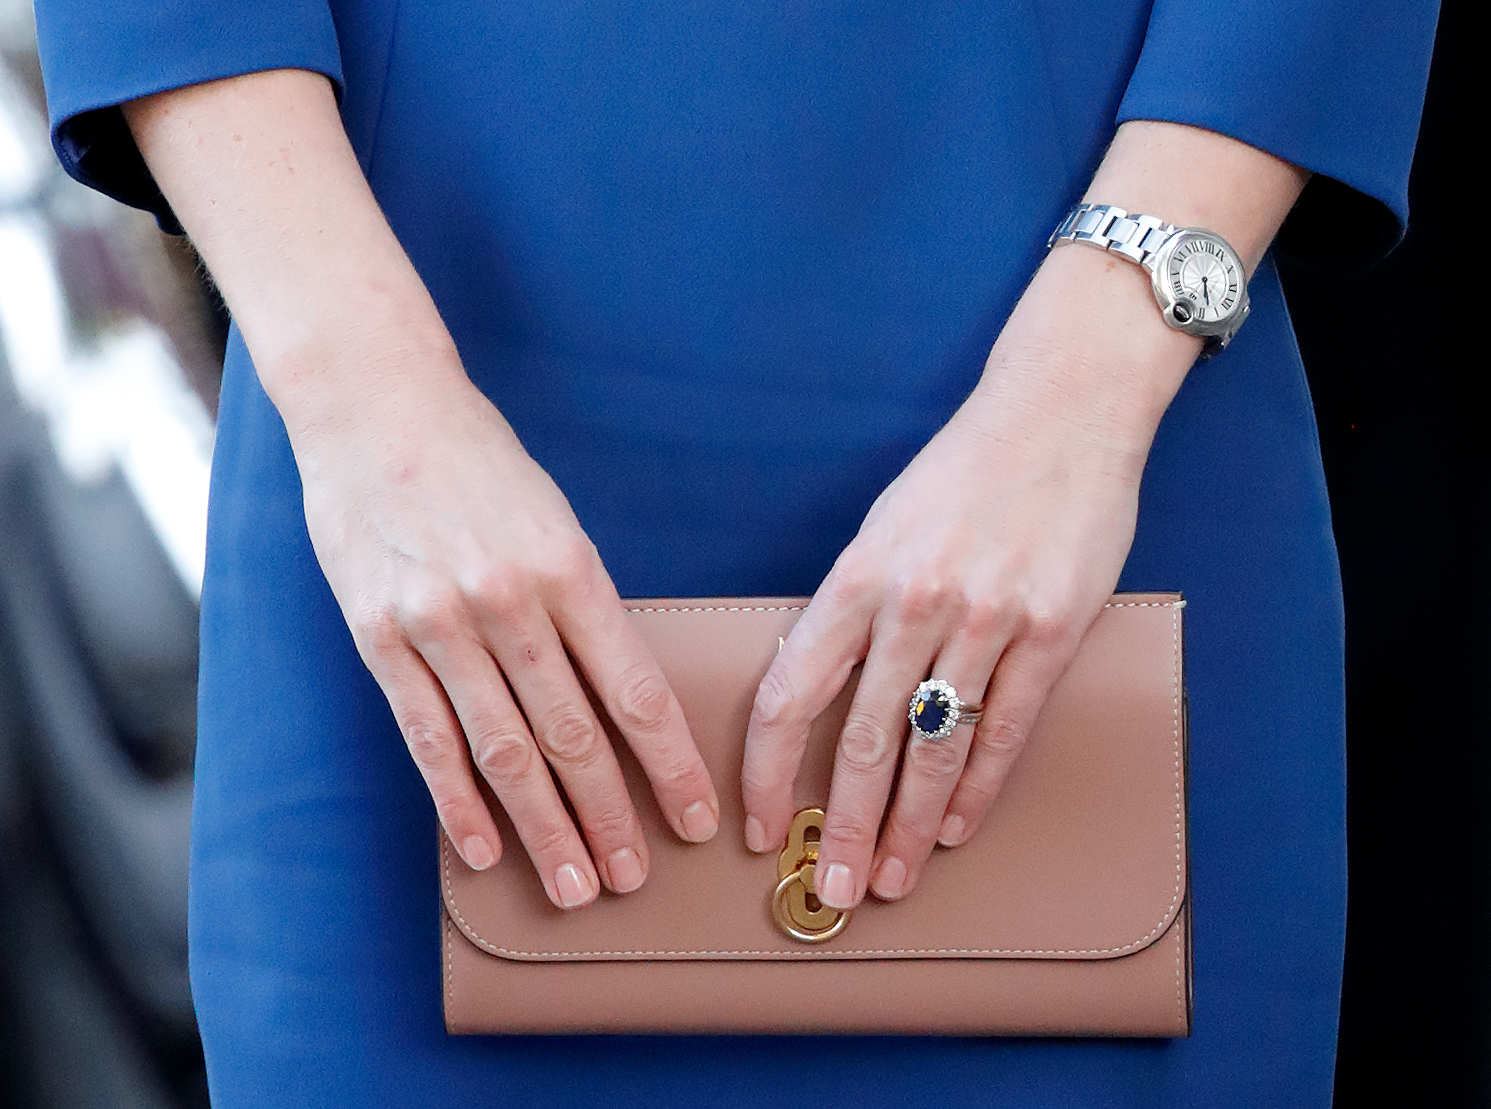 kate middleton s engagement ring was once looked down by the royal family https www latintimes com kate middletons engagement ring was once looked down royal family 438125